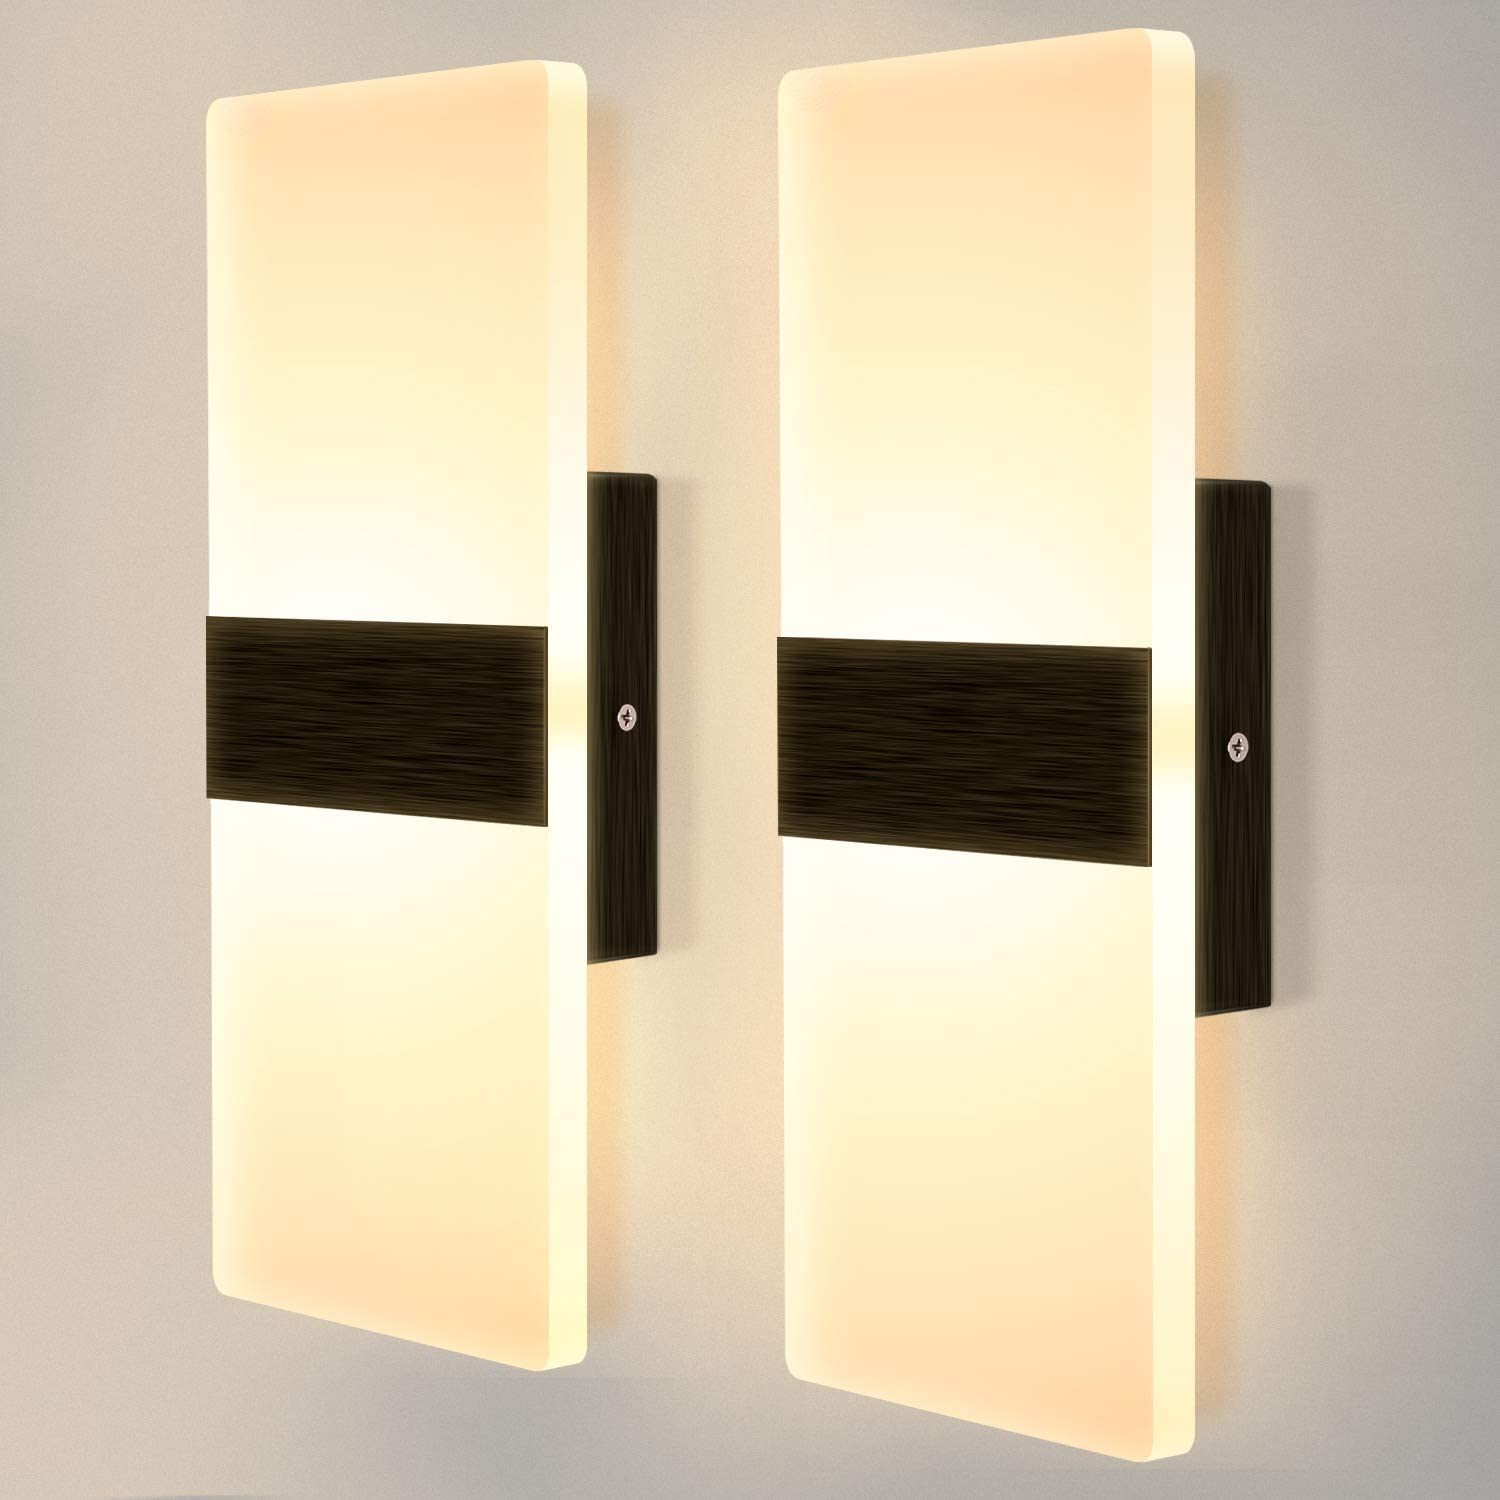 Lightess Modern Wall Sconce Set of 2 LED Wall Lamp 12w Up Down Wall Sconces Light Acrylic Black Hallway Wall Mounted Lamps for Bedroom Hallway Living Room , Warm White